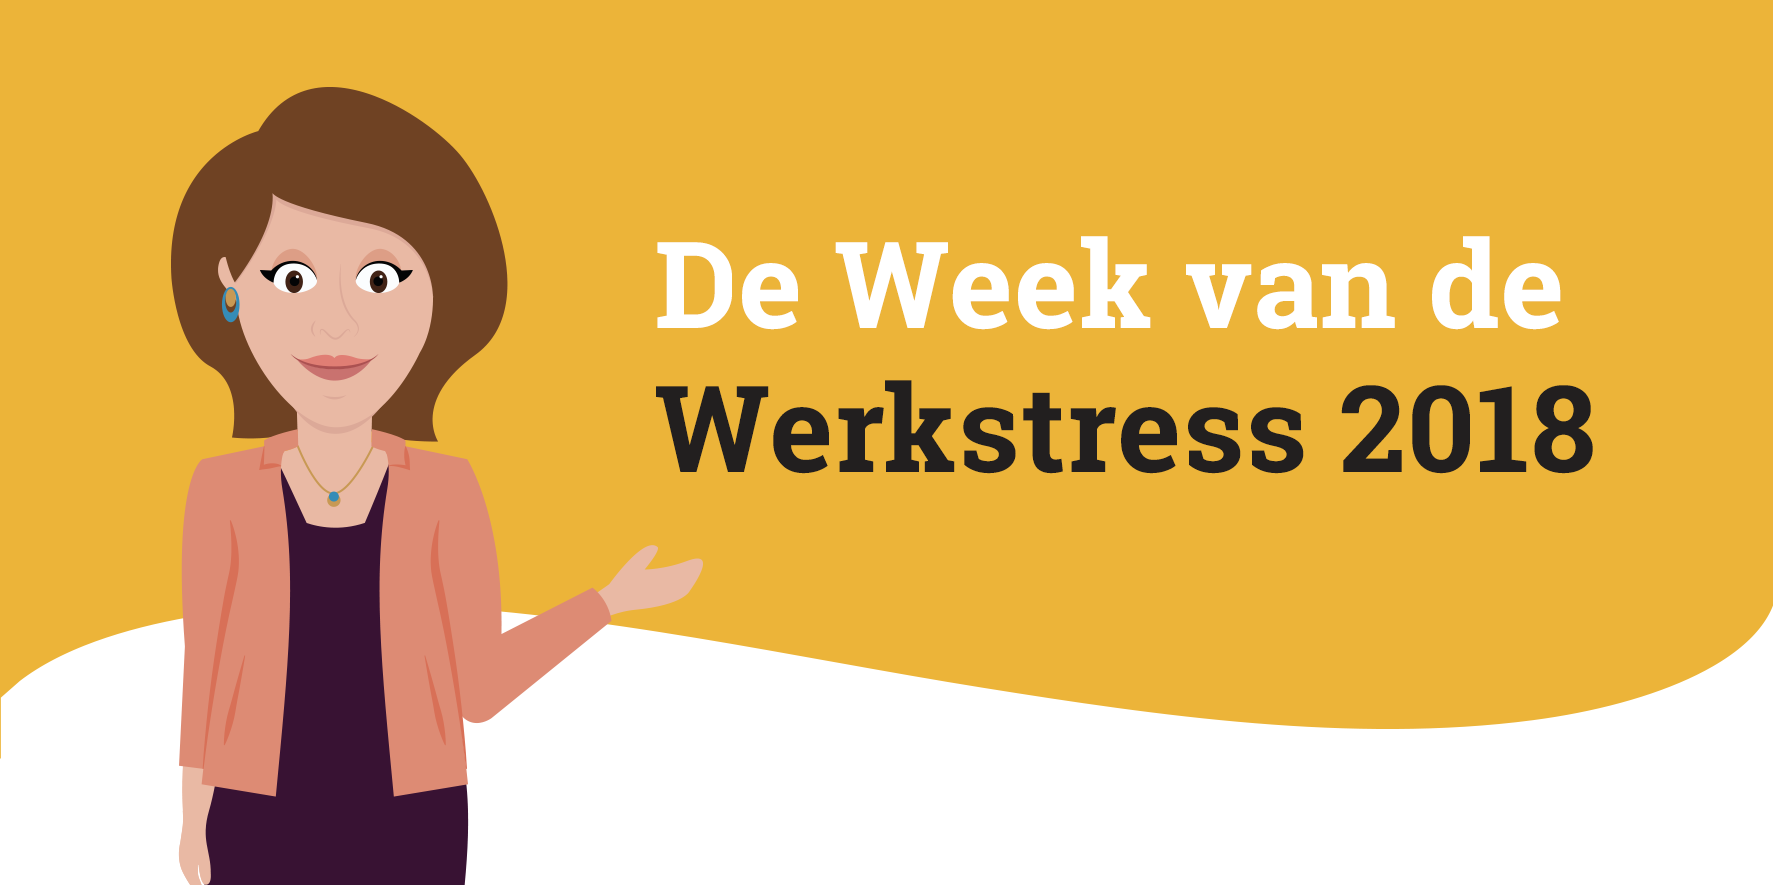 Week van de werkstress - Shared Ambition